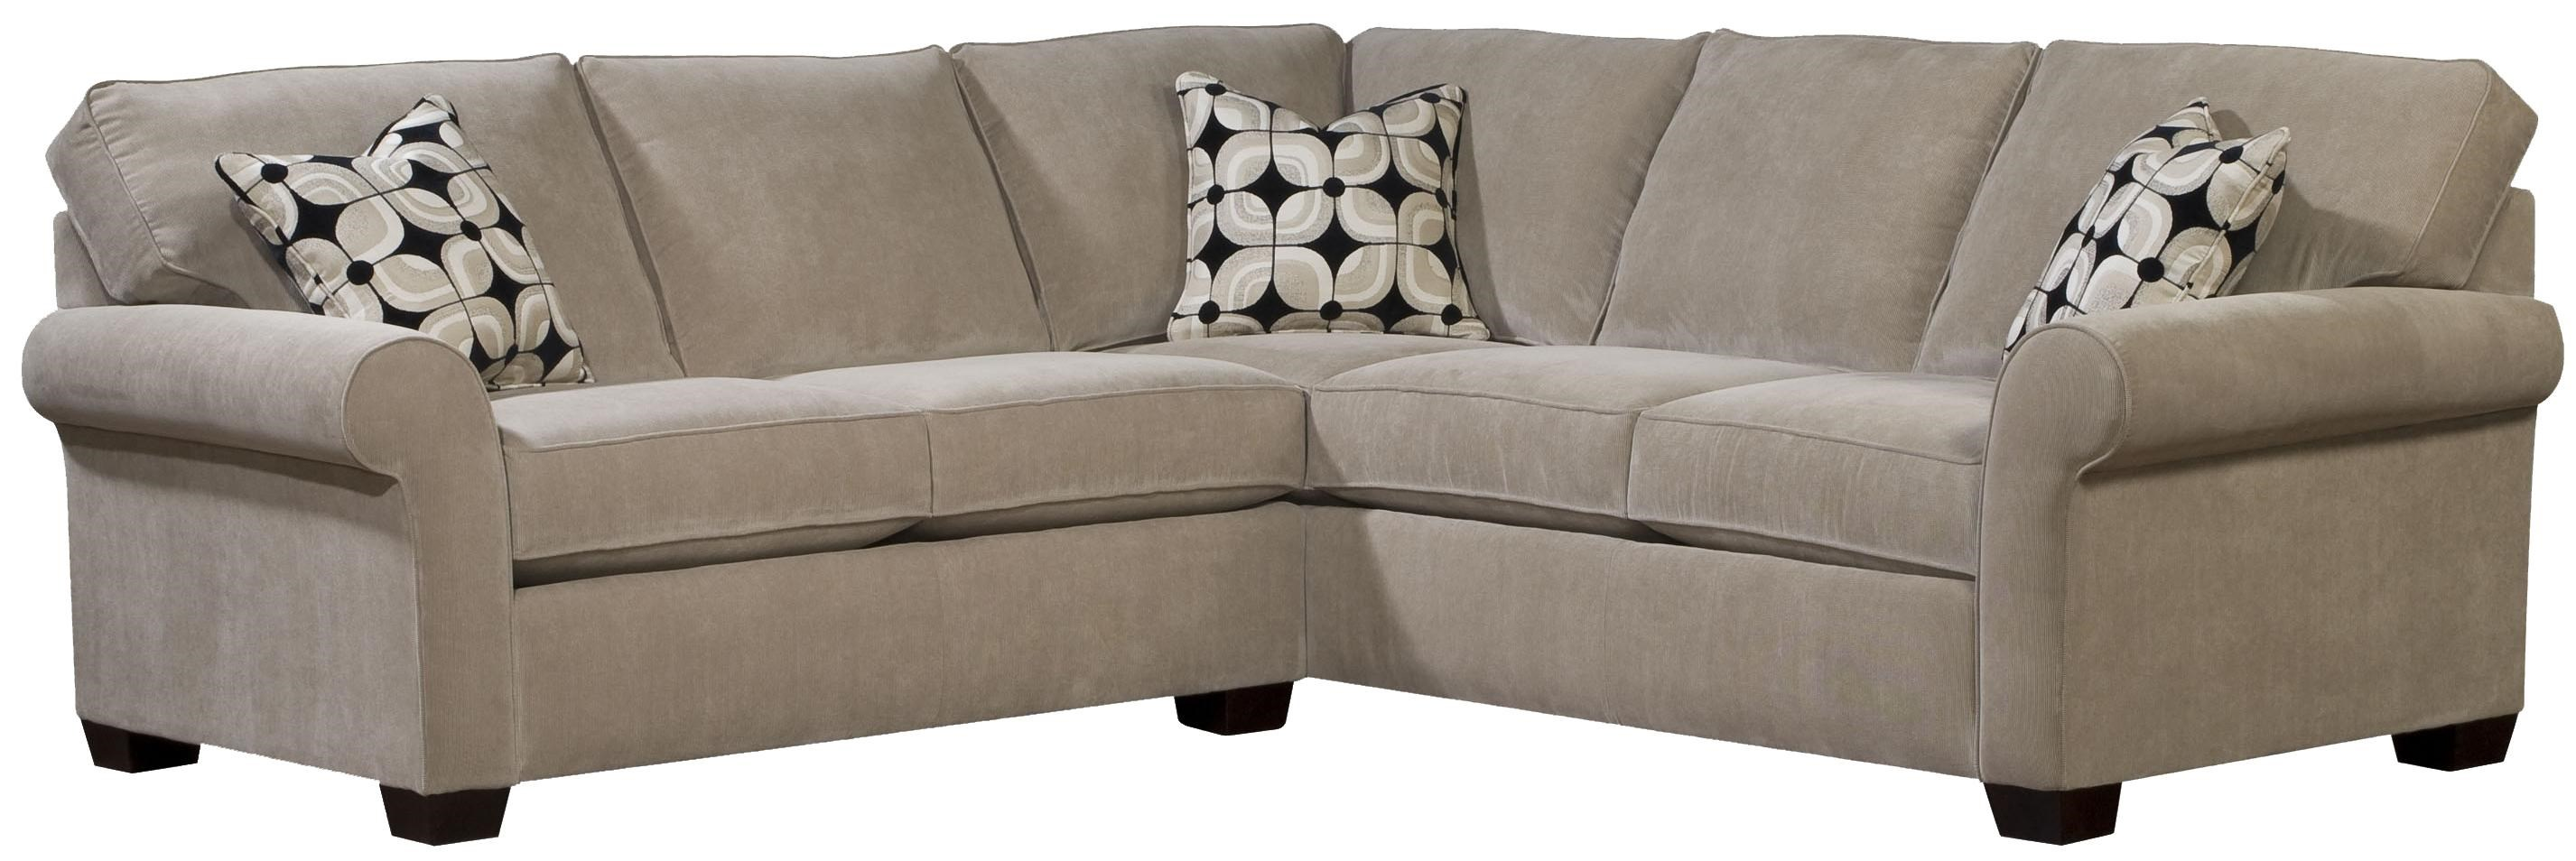 Broyhill Furniture Ethan Two Piece Sectional with LAF Full Sleeper - Baeru0027s Furniture - Sofa Sectional  sc 1 st  Baeru0027s Furniture : broyhill sectionals - Sectionals, Sofas & Couches